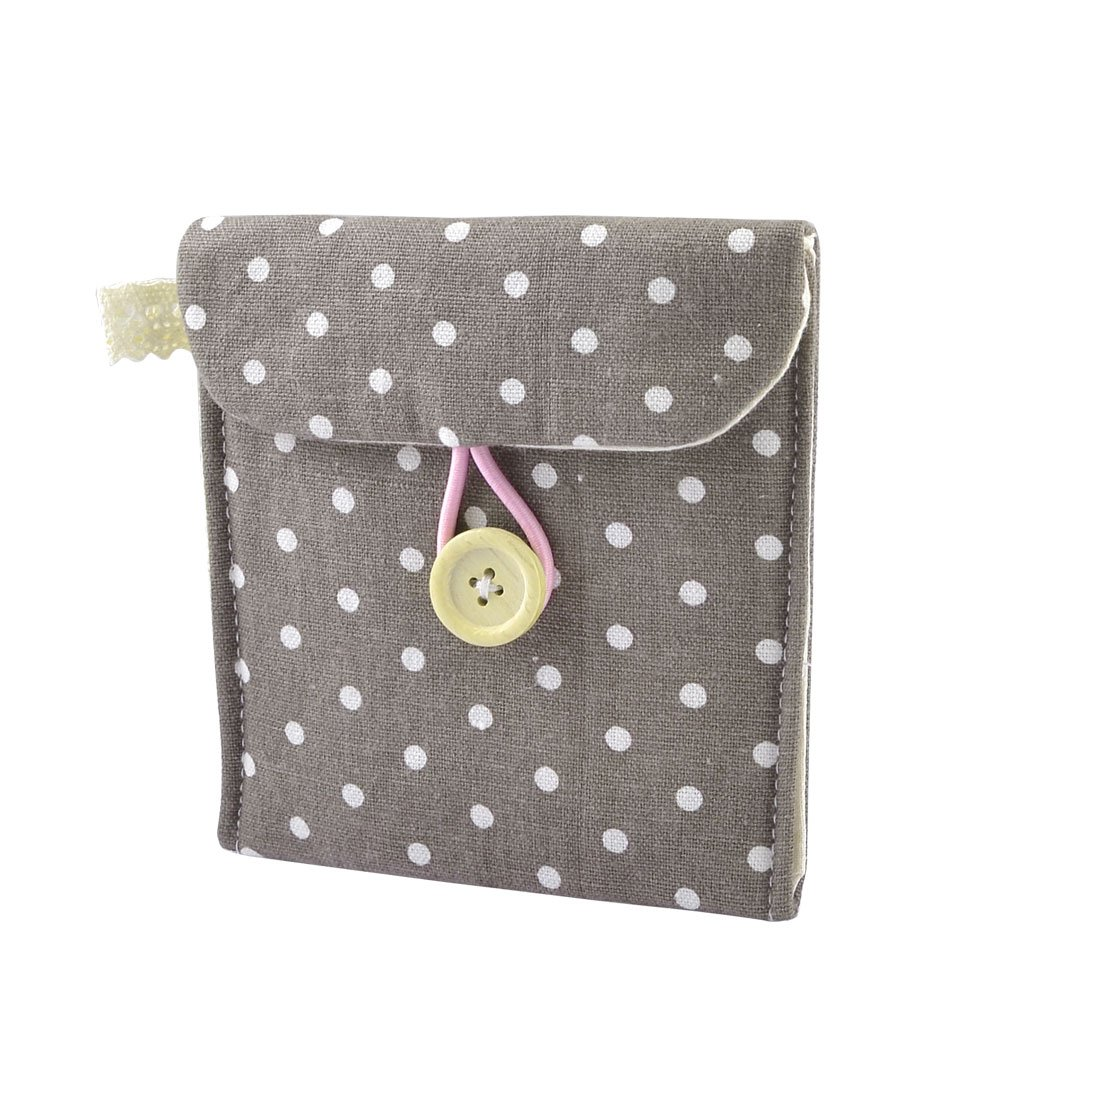 Hot Girl Cotton Blends Polka Dots Sanitary Pad Holder Button Bag Case Gray White